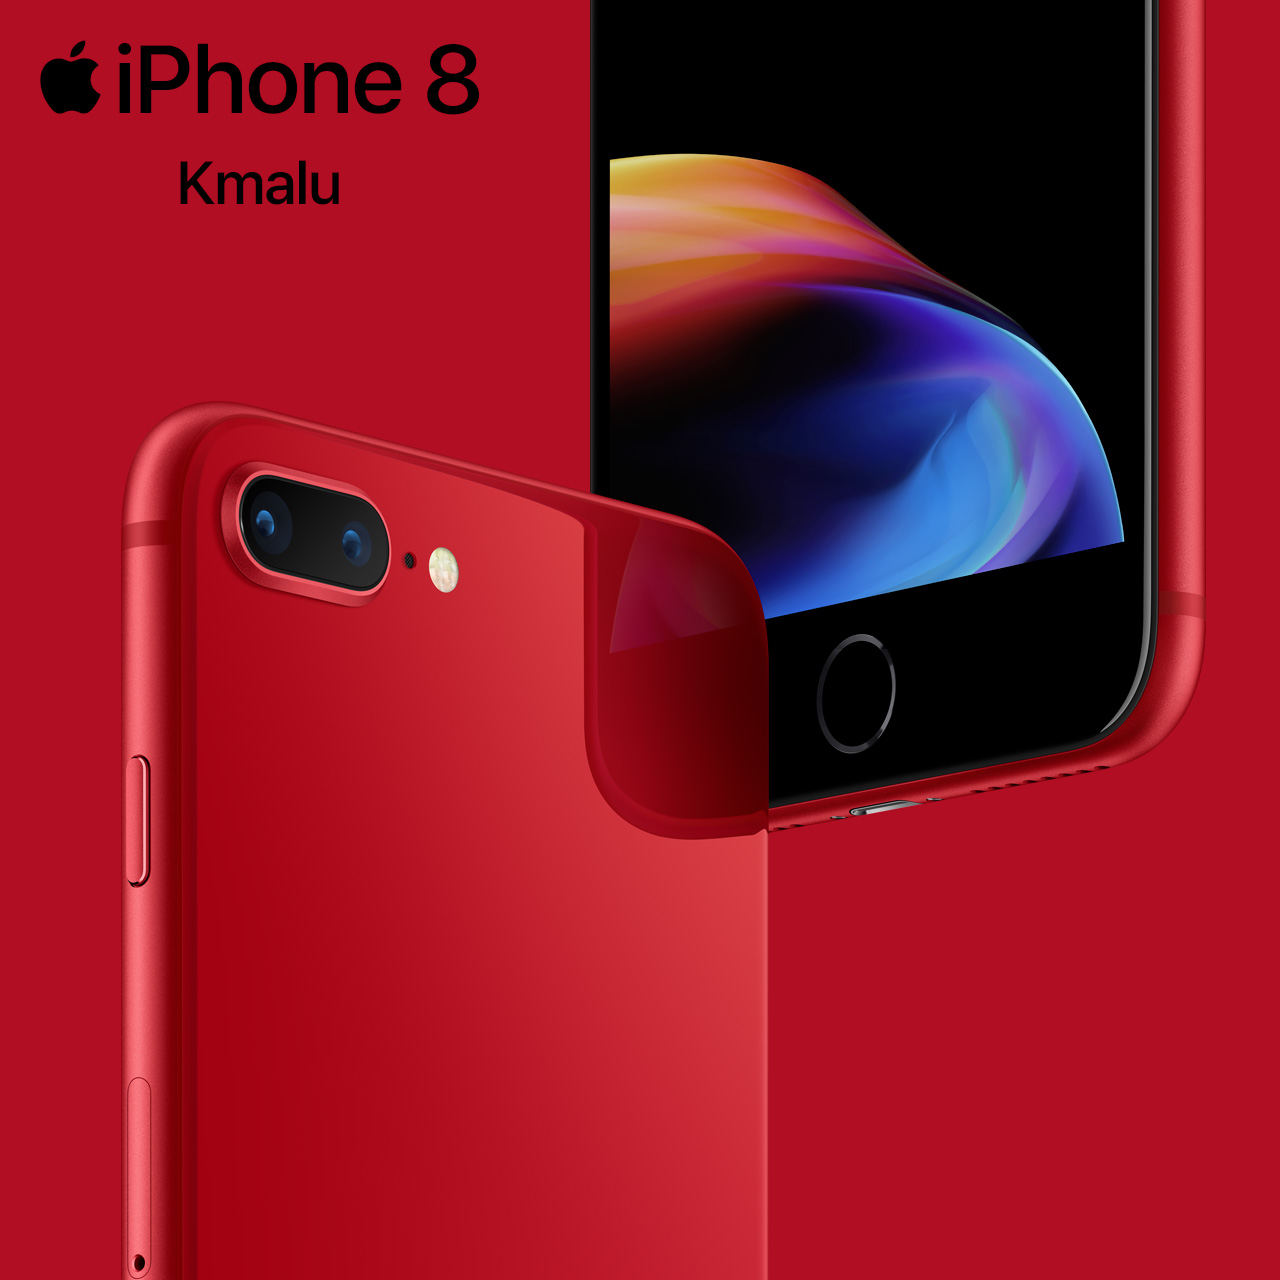 SI - iPhone 8 (PRODUCT)RED